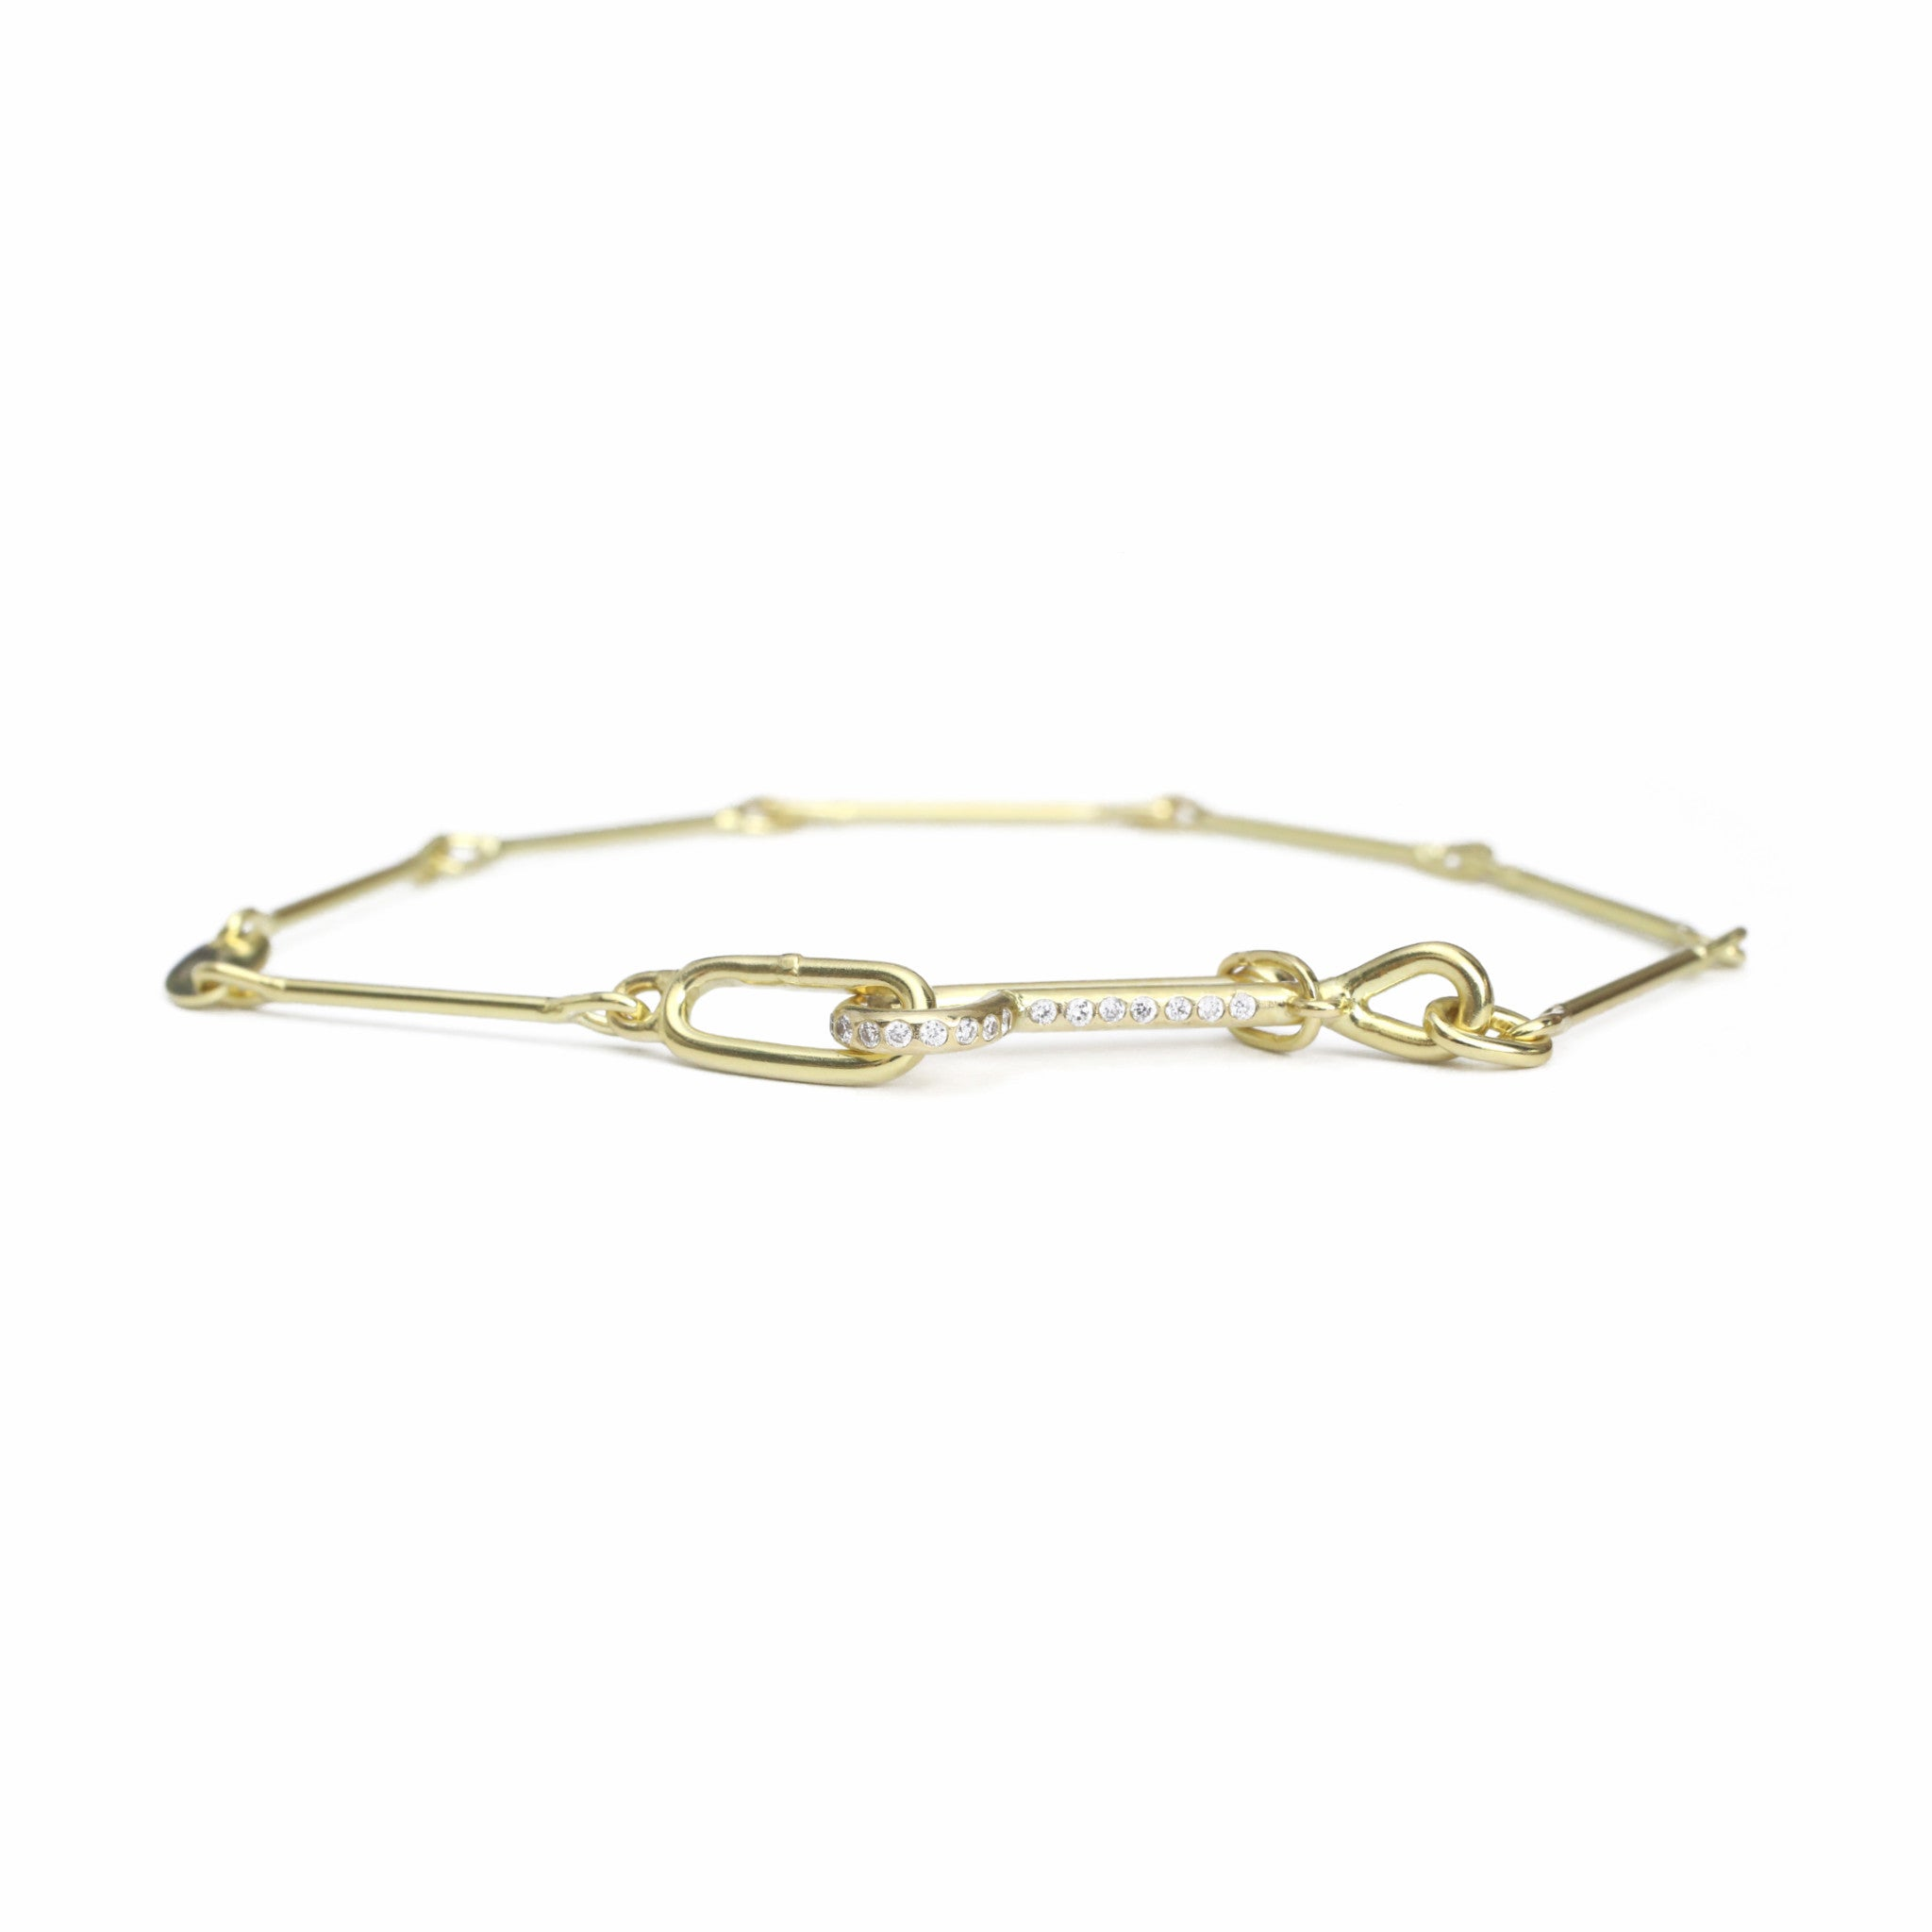 Needle Eye Chain Bracelet - Medium Weight